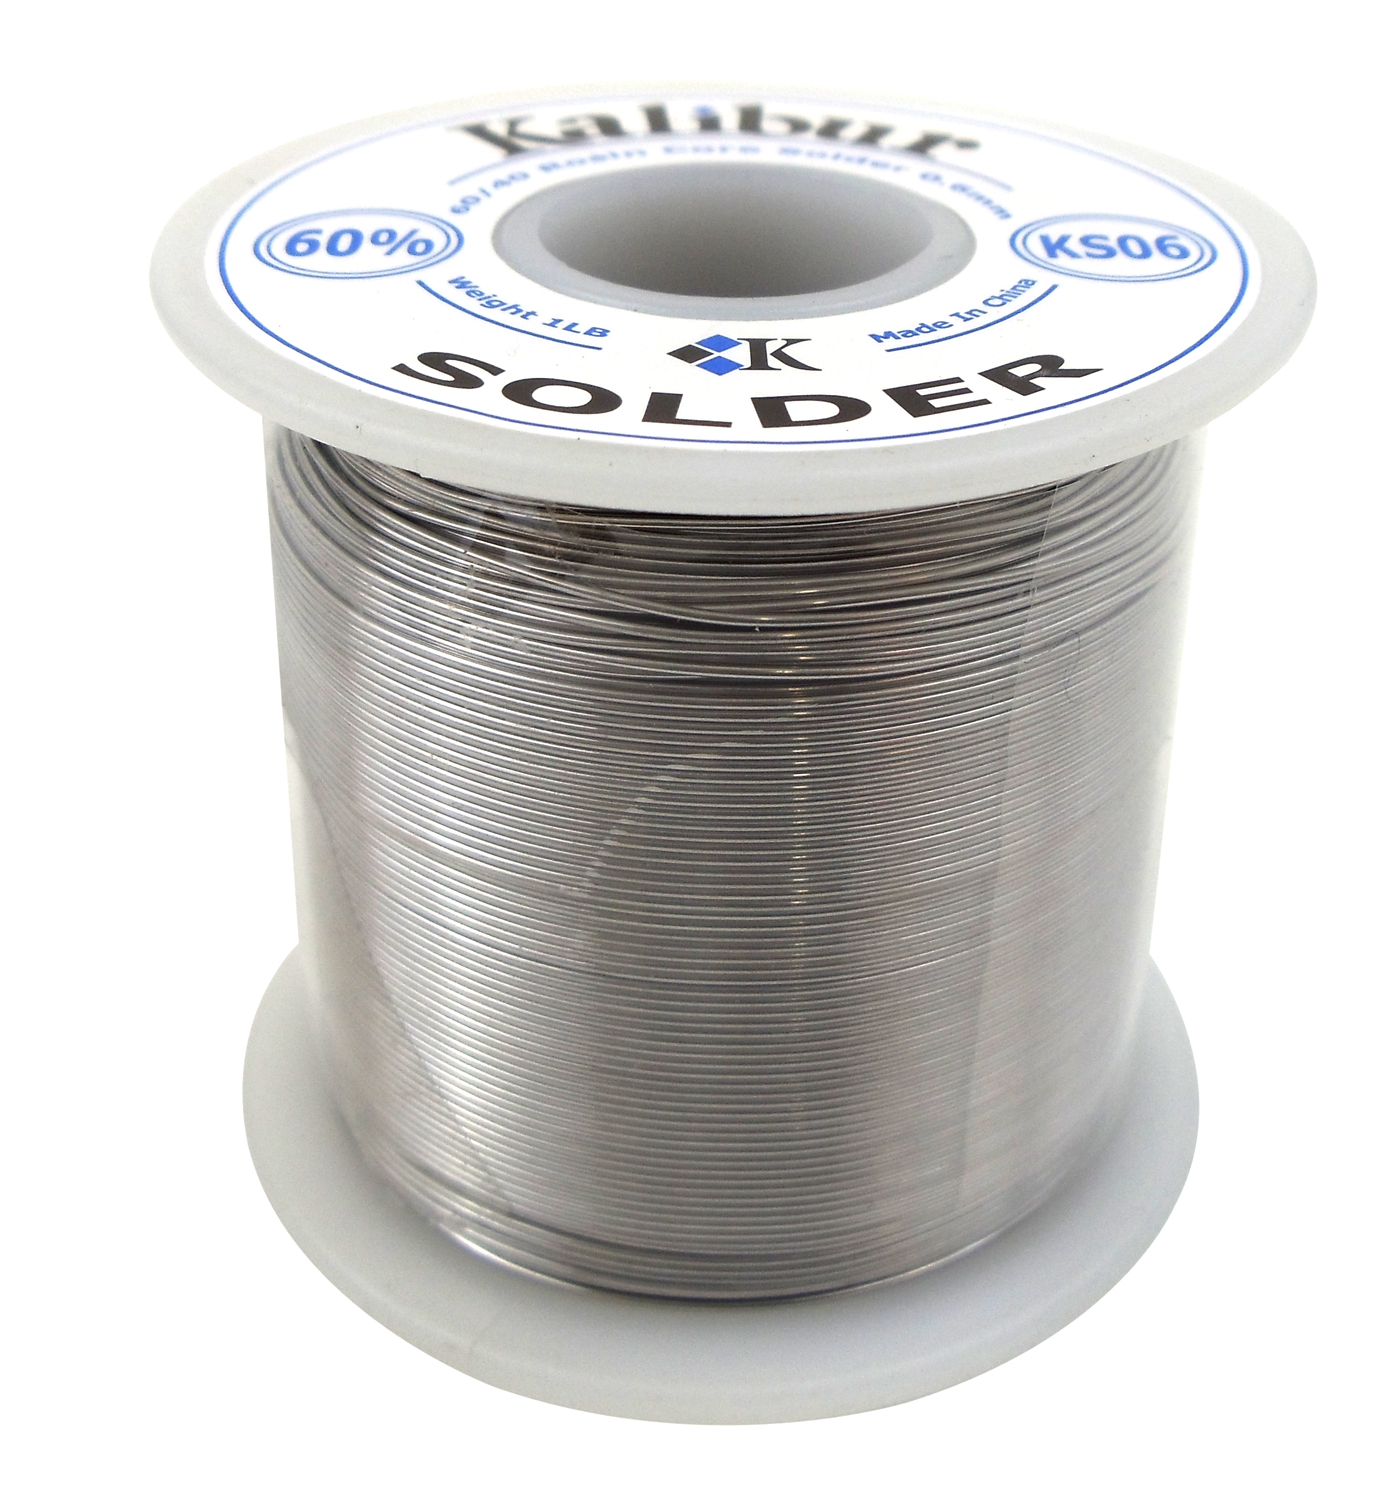 KALIBUR - 60/40 ROSIN CORE 23 GAUGE SOLDER .61MM (1LB SPOOL)